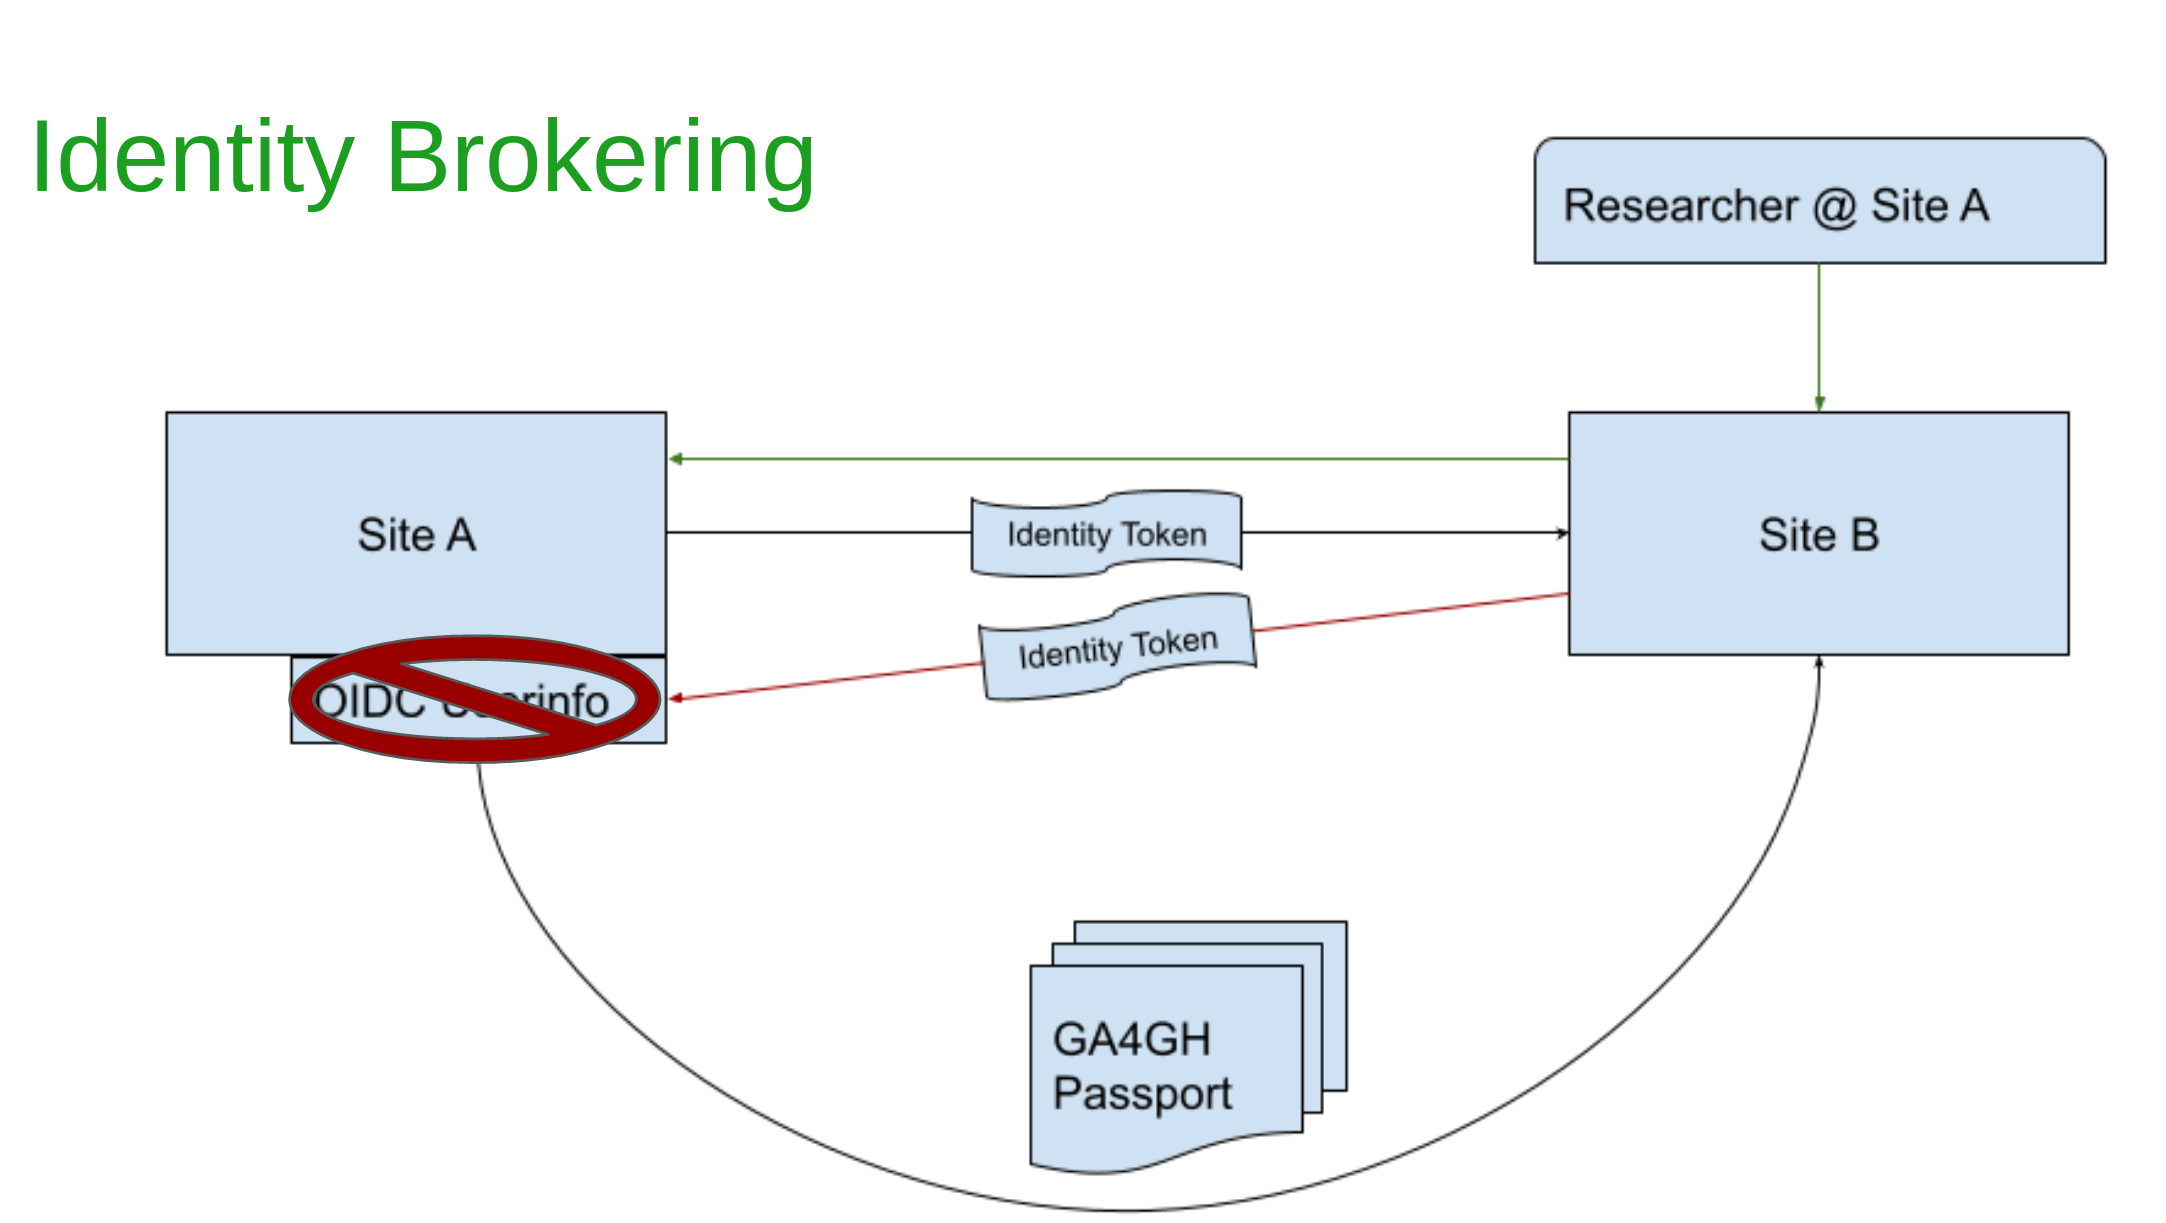 Diagram showing the use of userinfo endpoint of the OpenID Connect protocol to fetch the Identity Token.